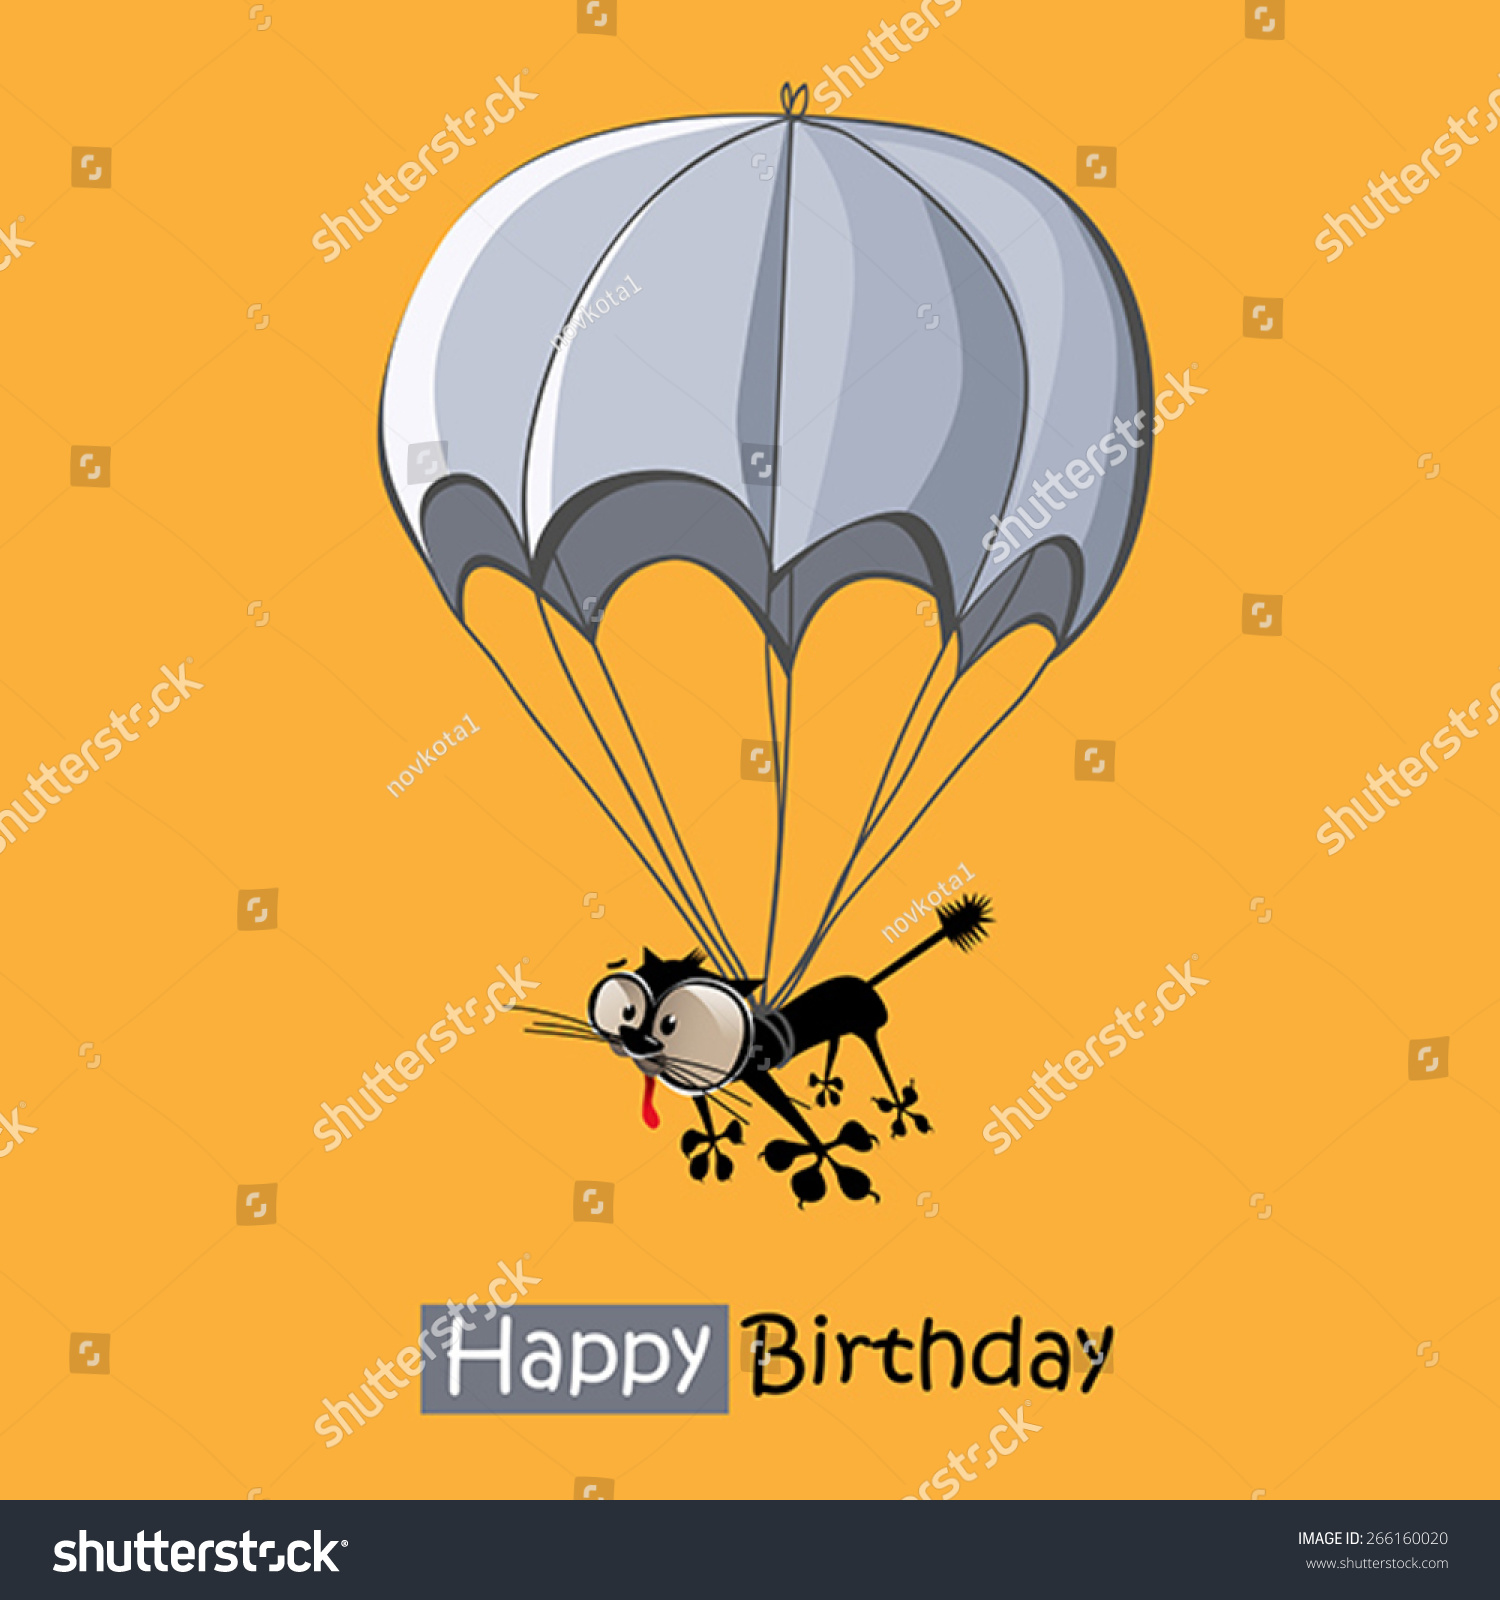 happy birthday skydiving ; happy-birthday-skydiving-stock-vector-happy-birthday-smile-cat-parachute-266160020